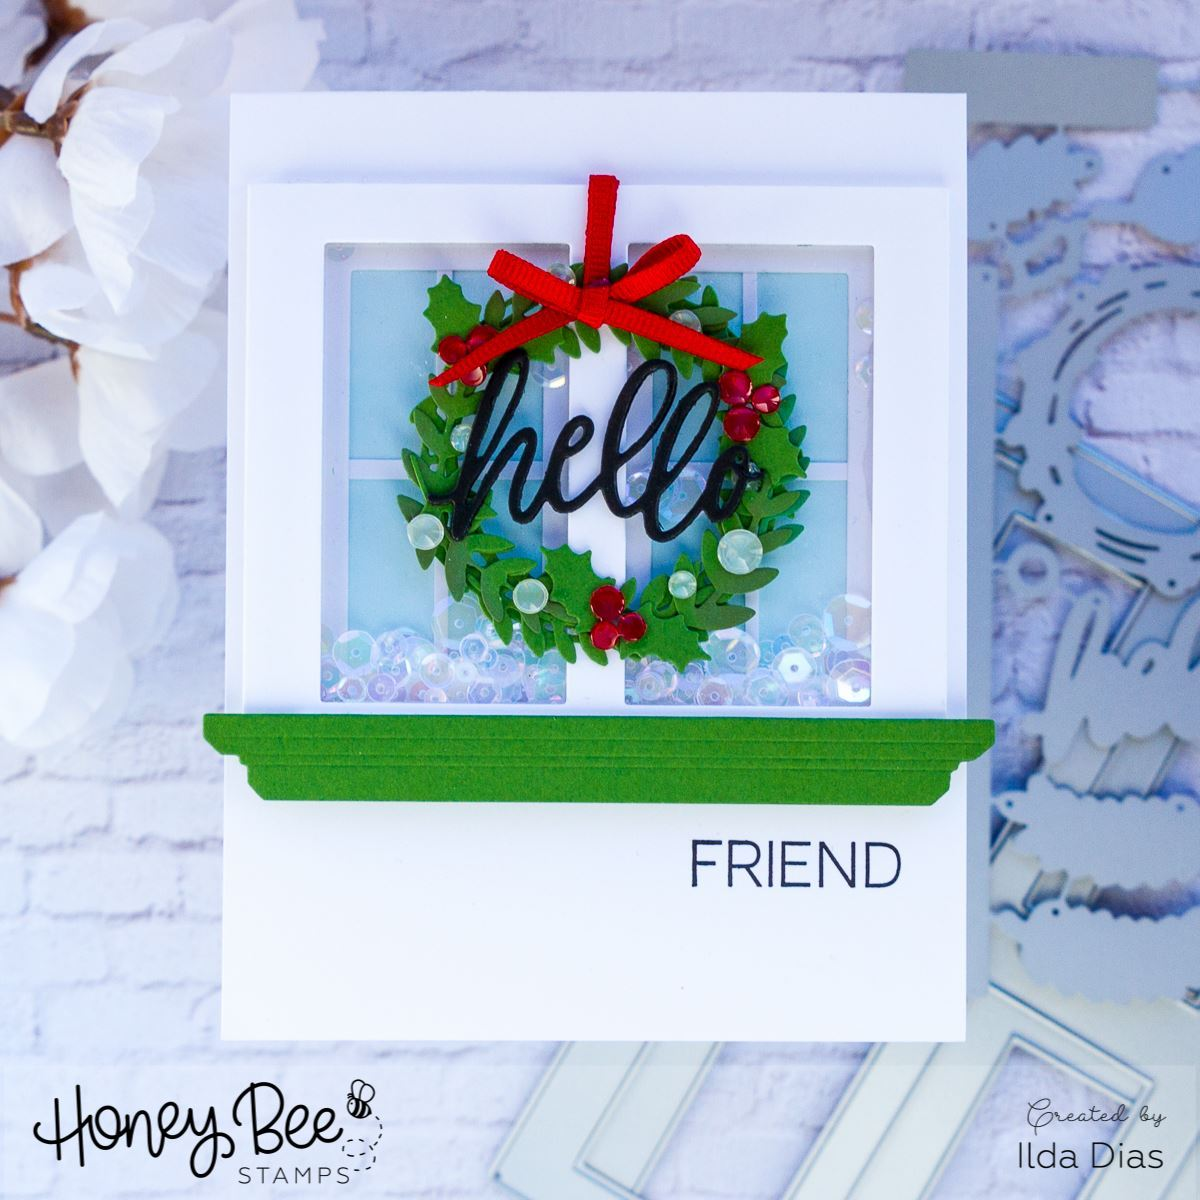 Honey Bee Stamps - Welcome Home